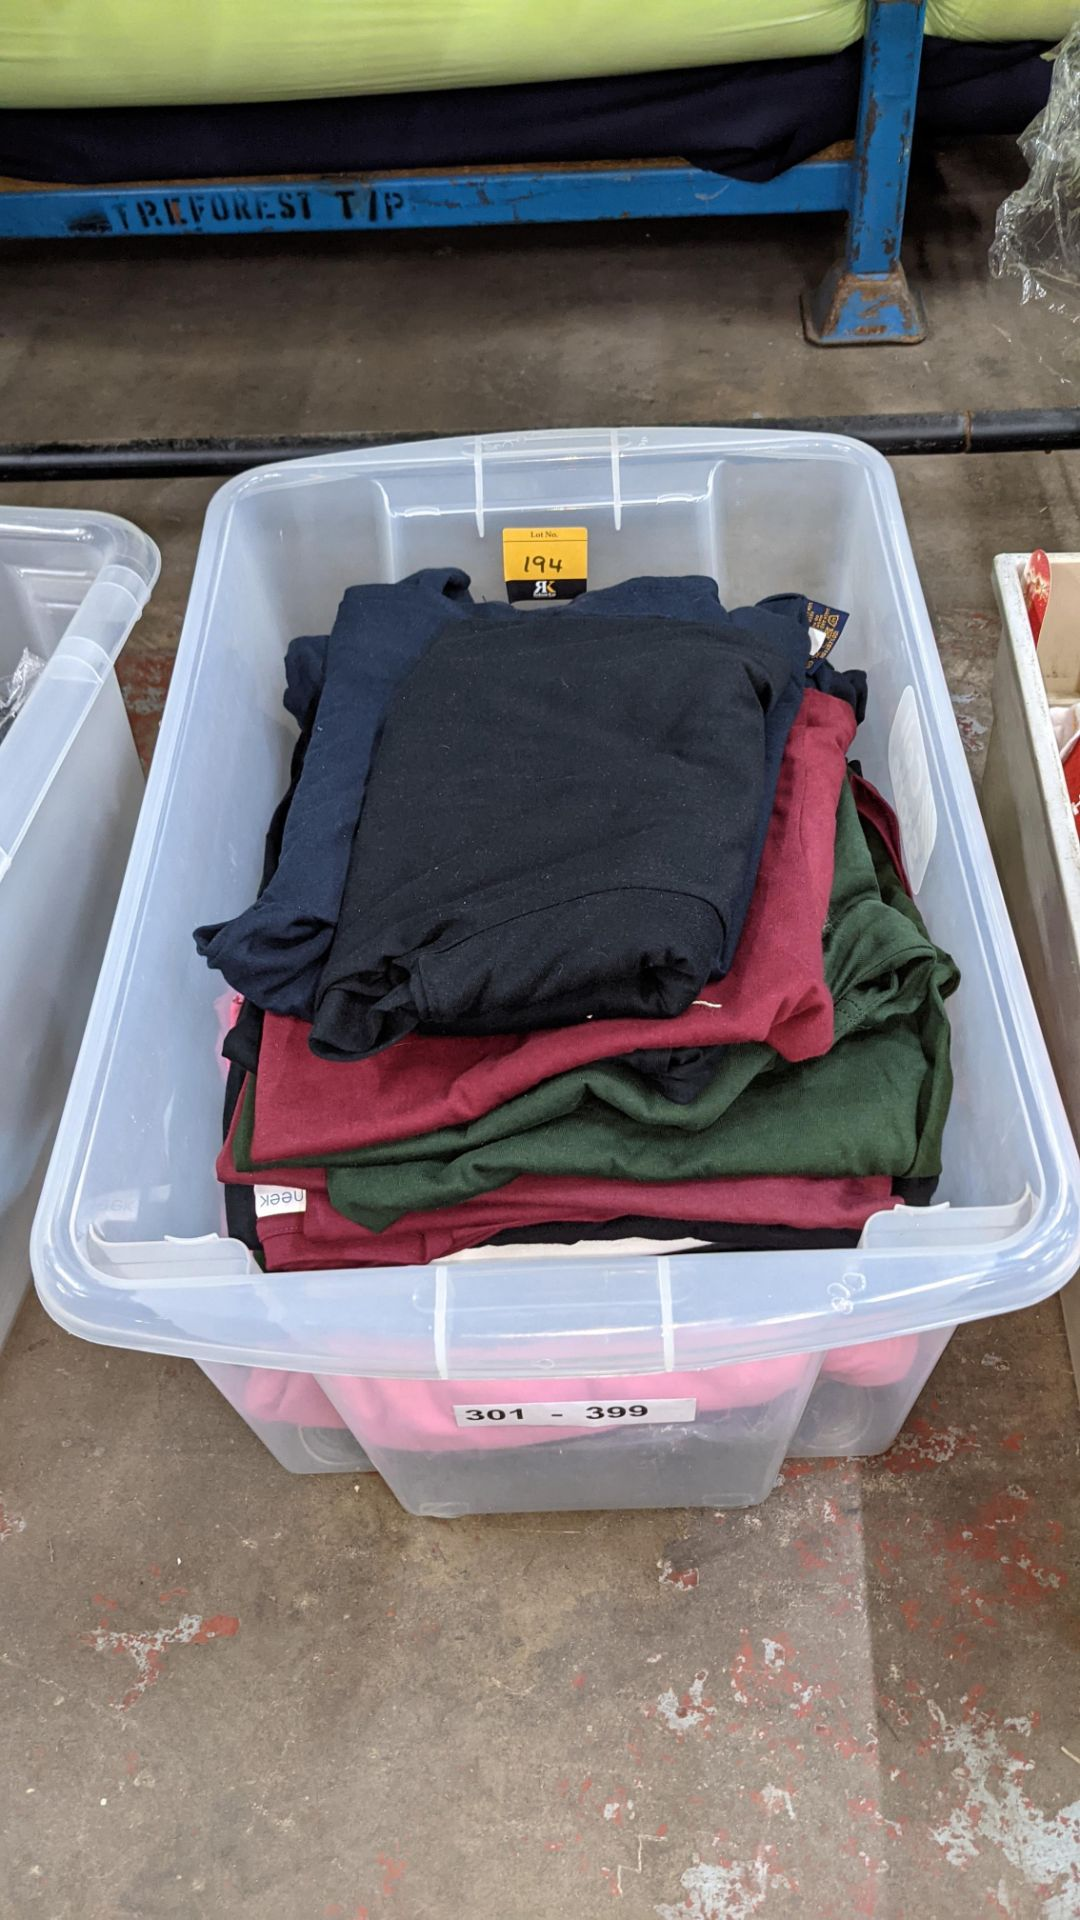 Approx 25 off Uneek assorted t-shirts